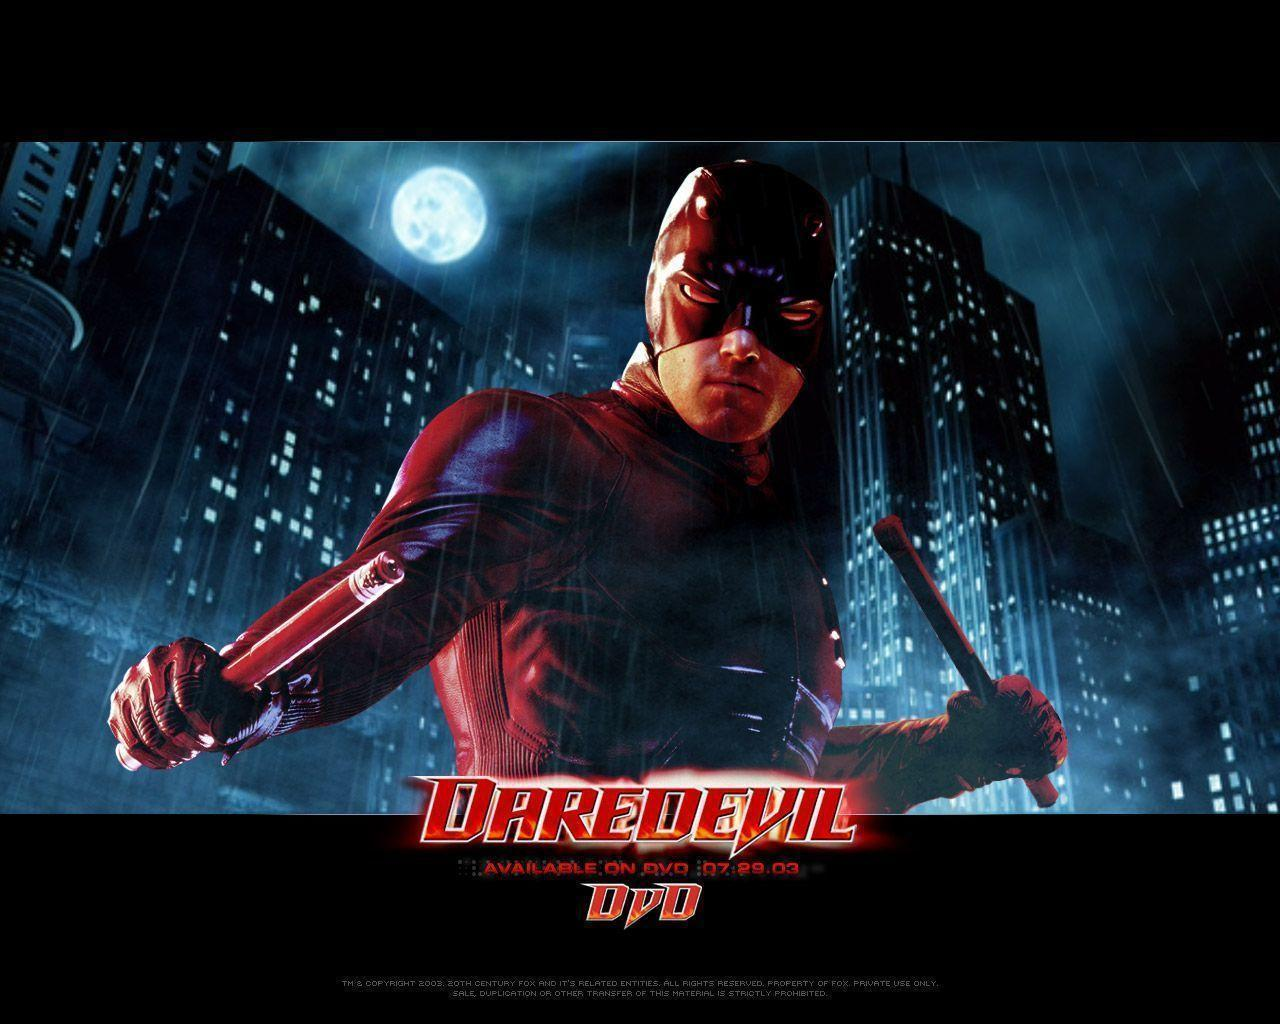 Daredevil TheWallpapers